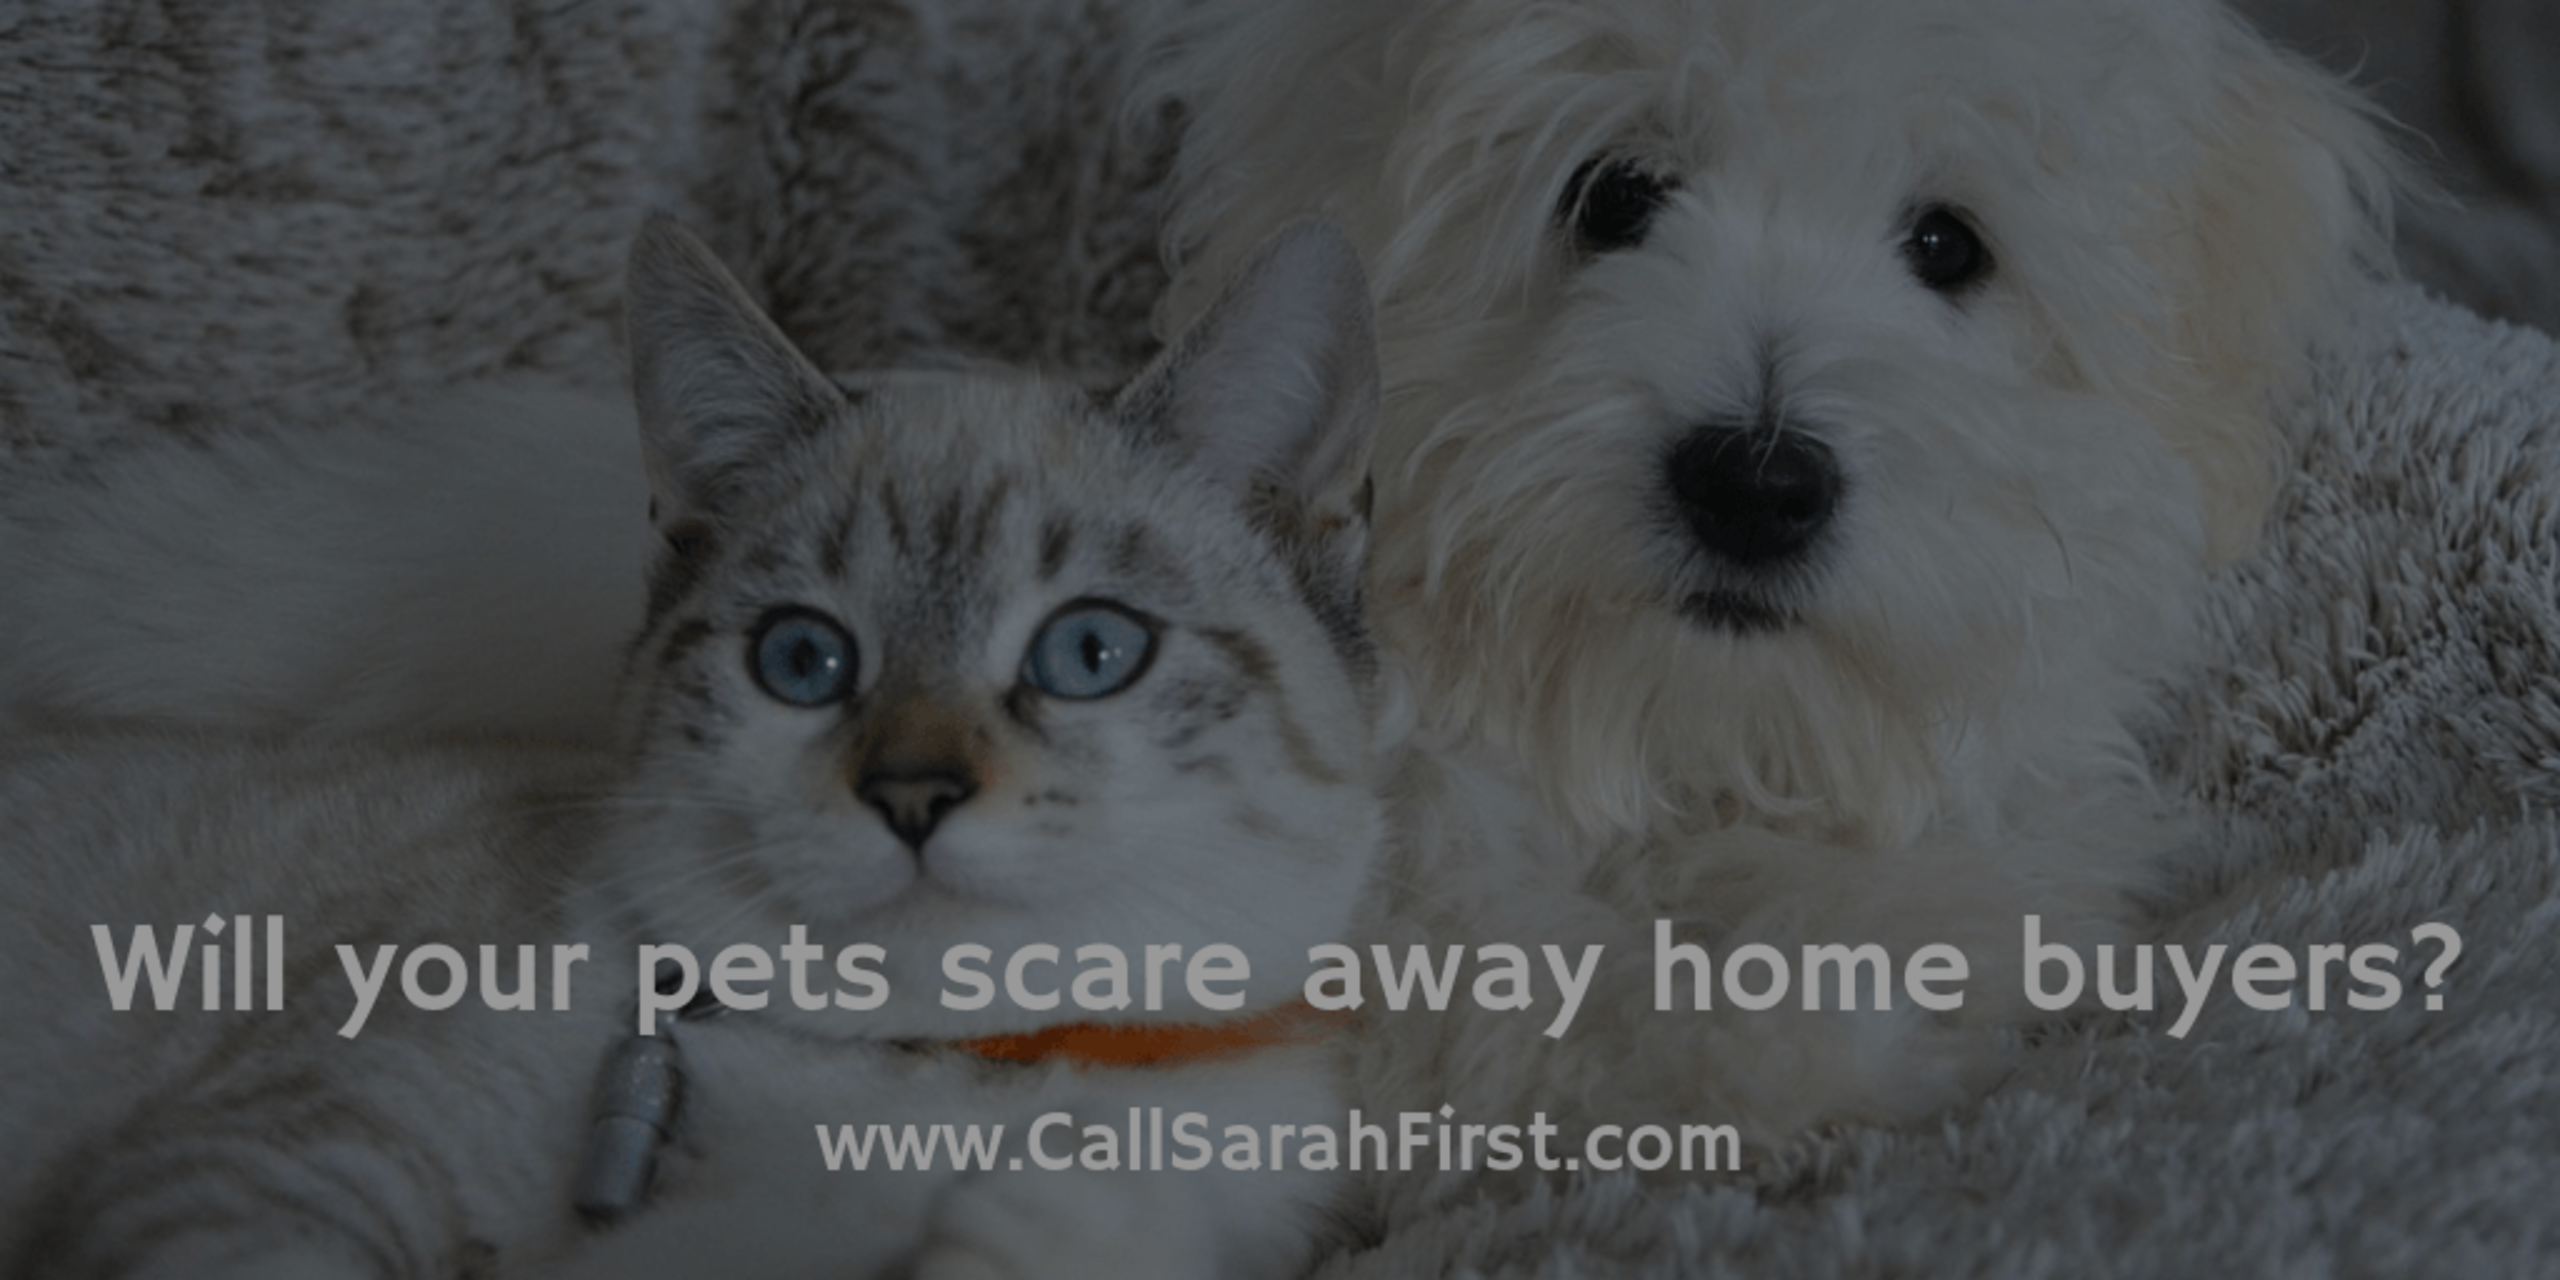 Do pets scare buyers away?